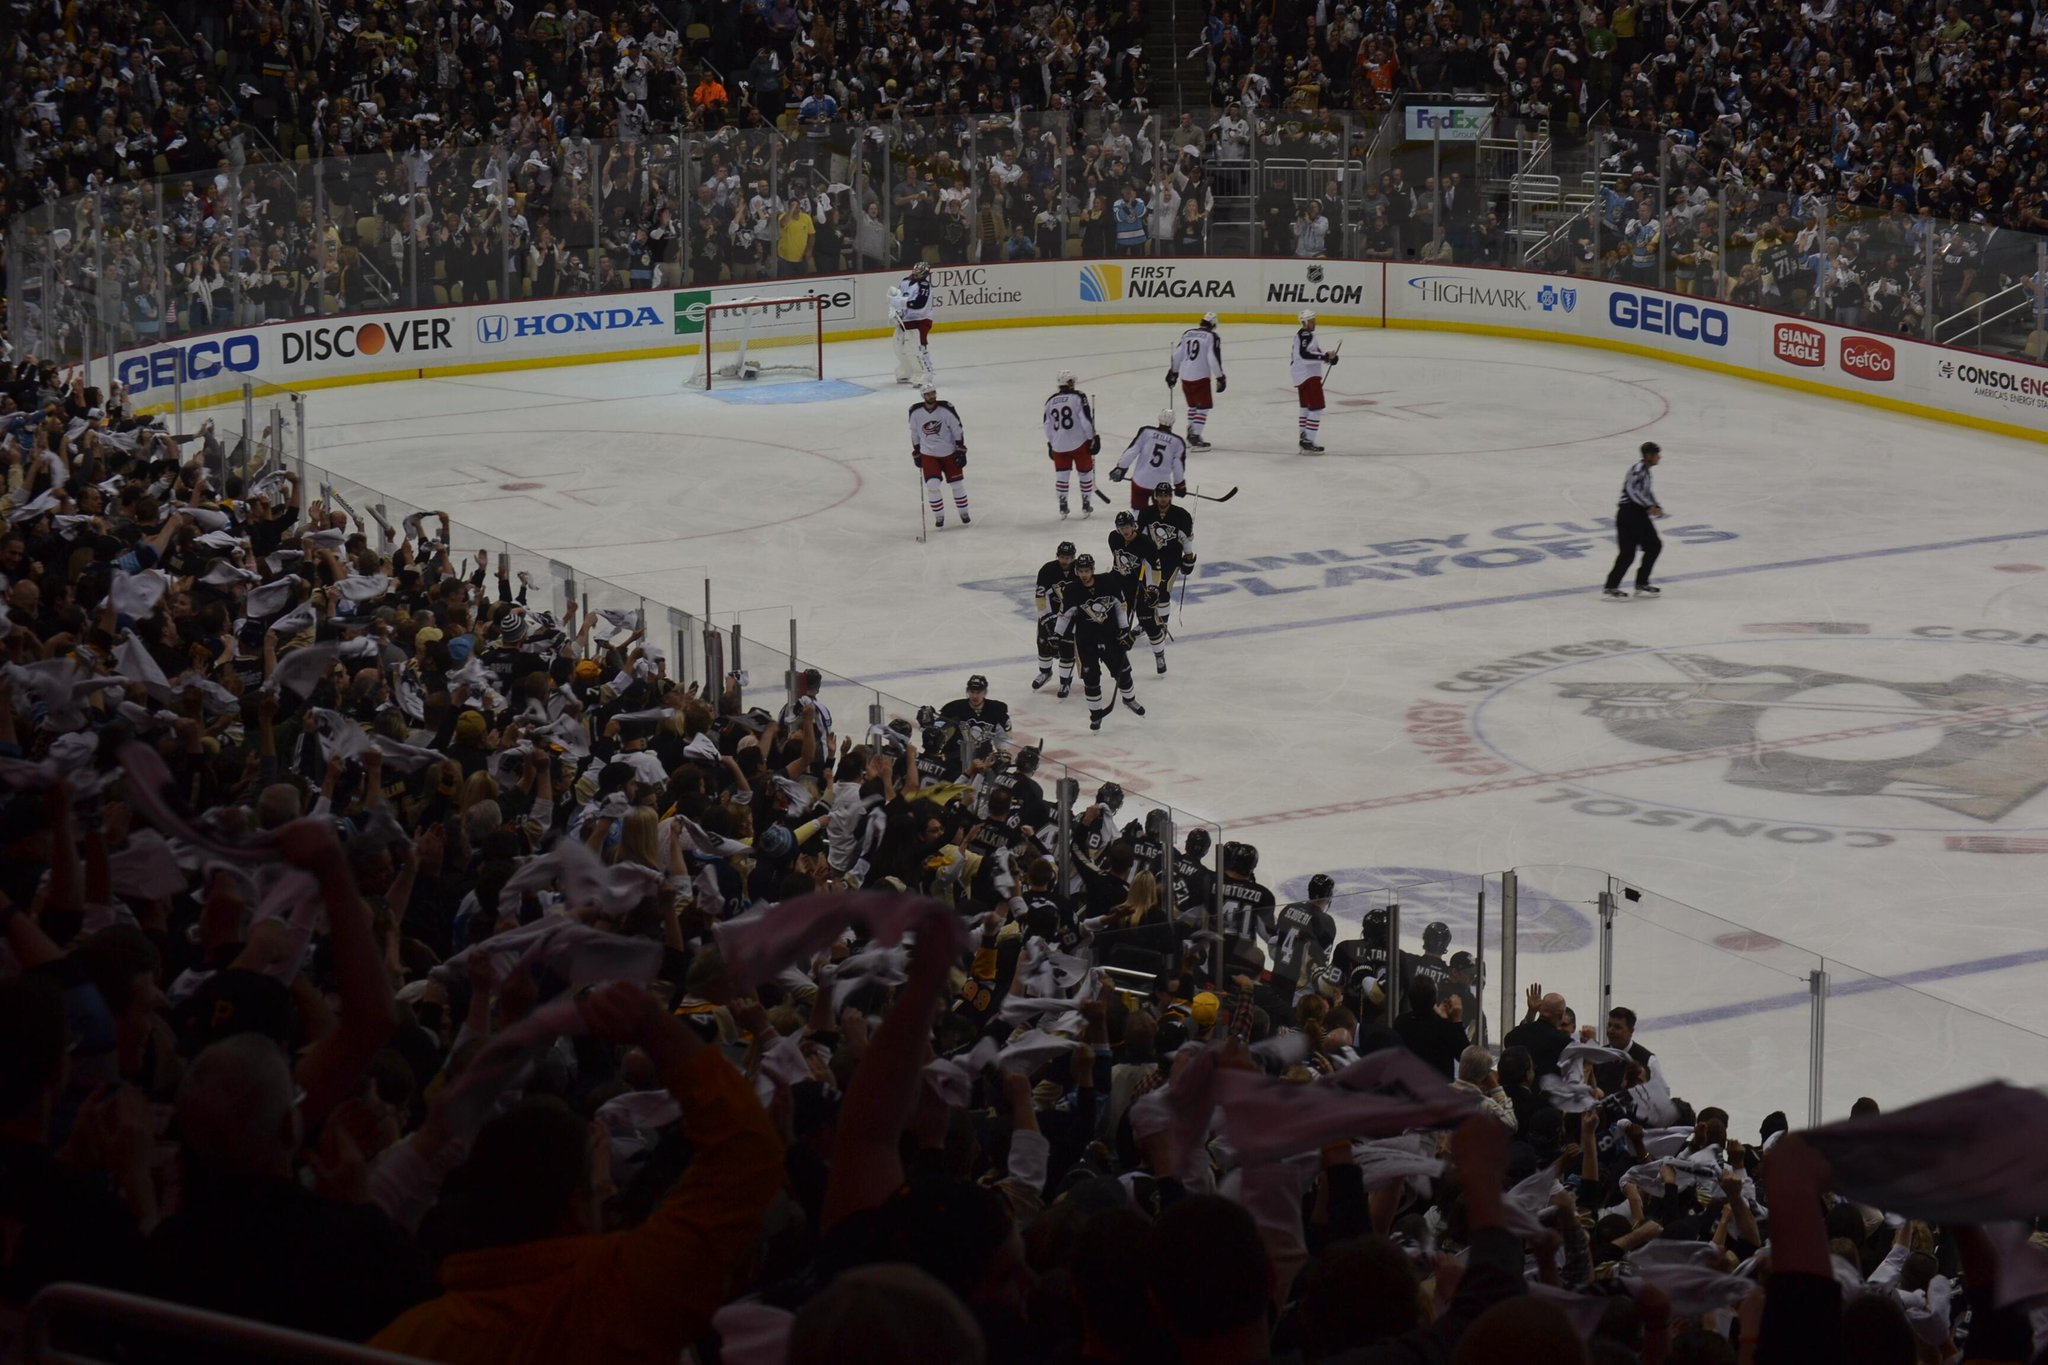 Maybe a pic can describe it? MT @cawthonn: Words cannot describe how electric the atmosphere was in Consol tonight! http://t.co/hkIY5sya1y